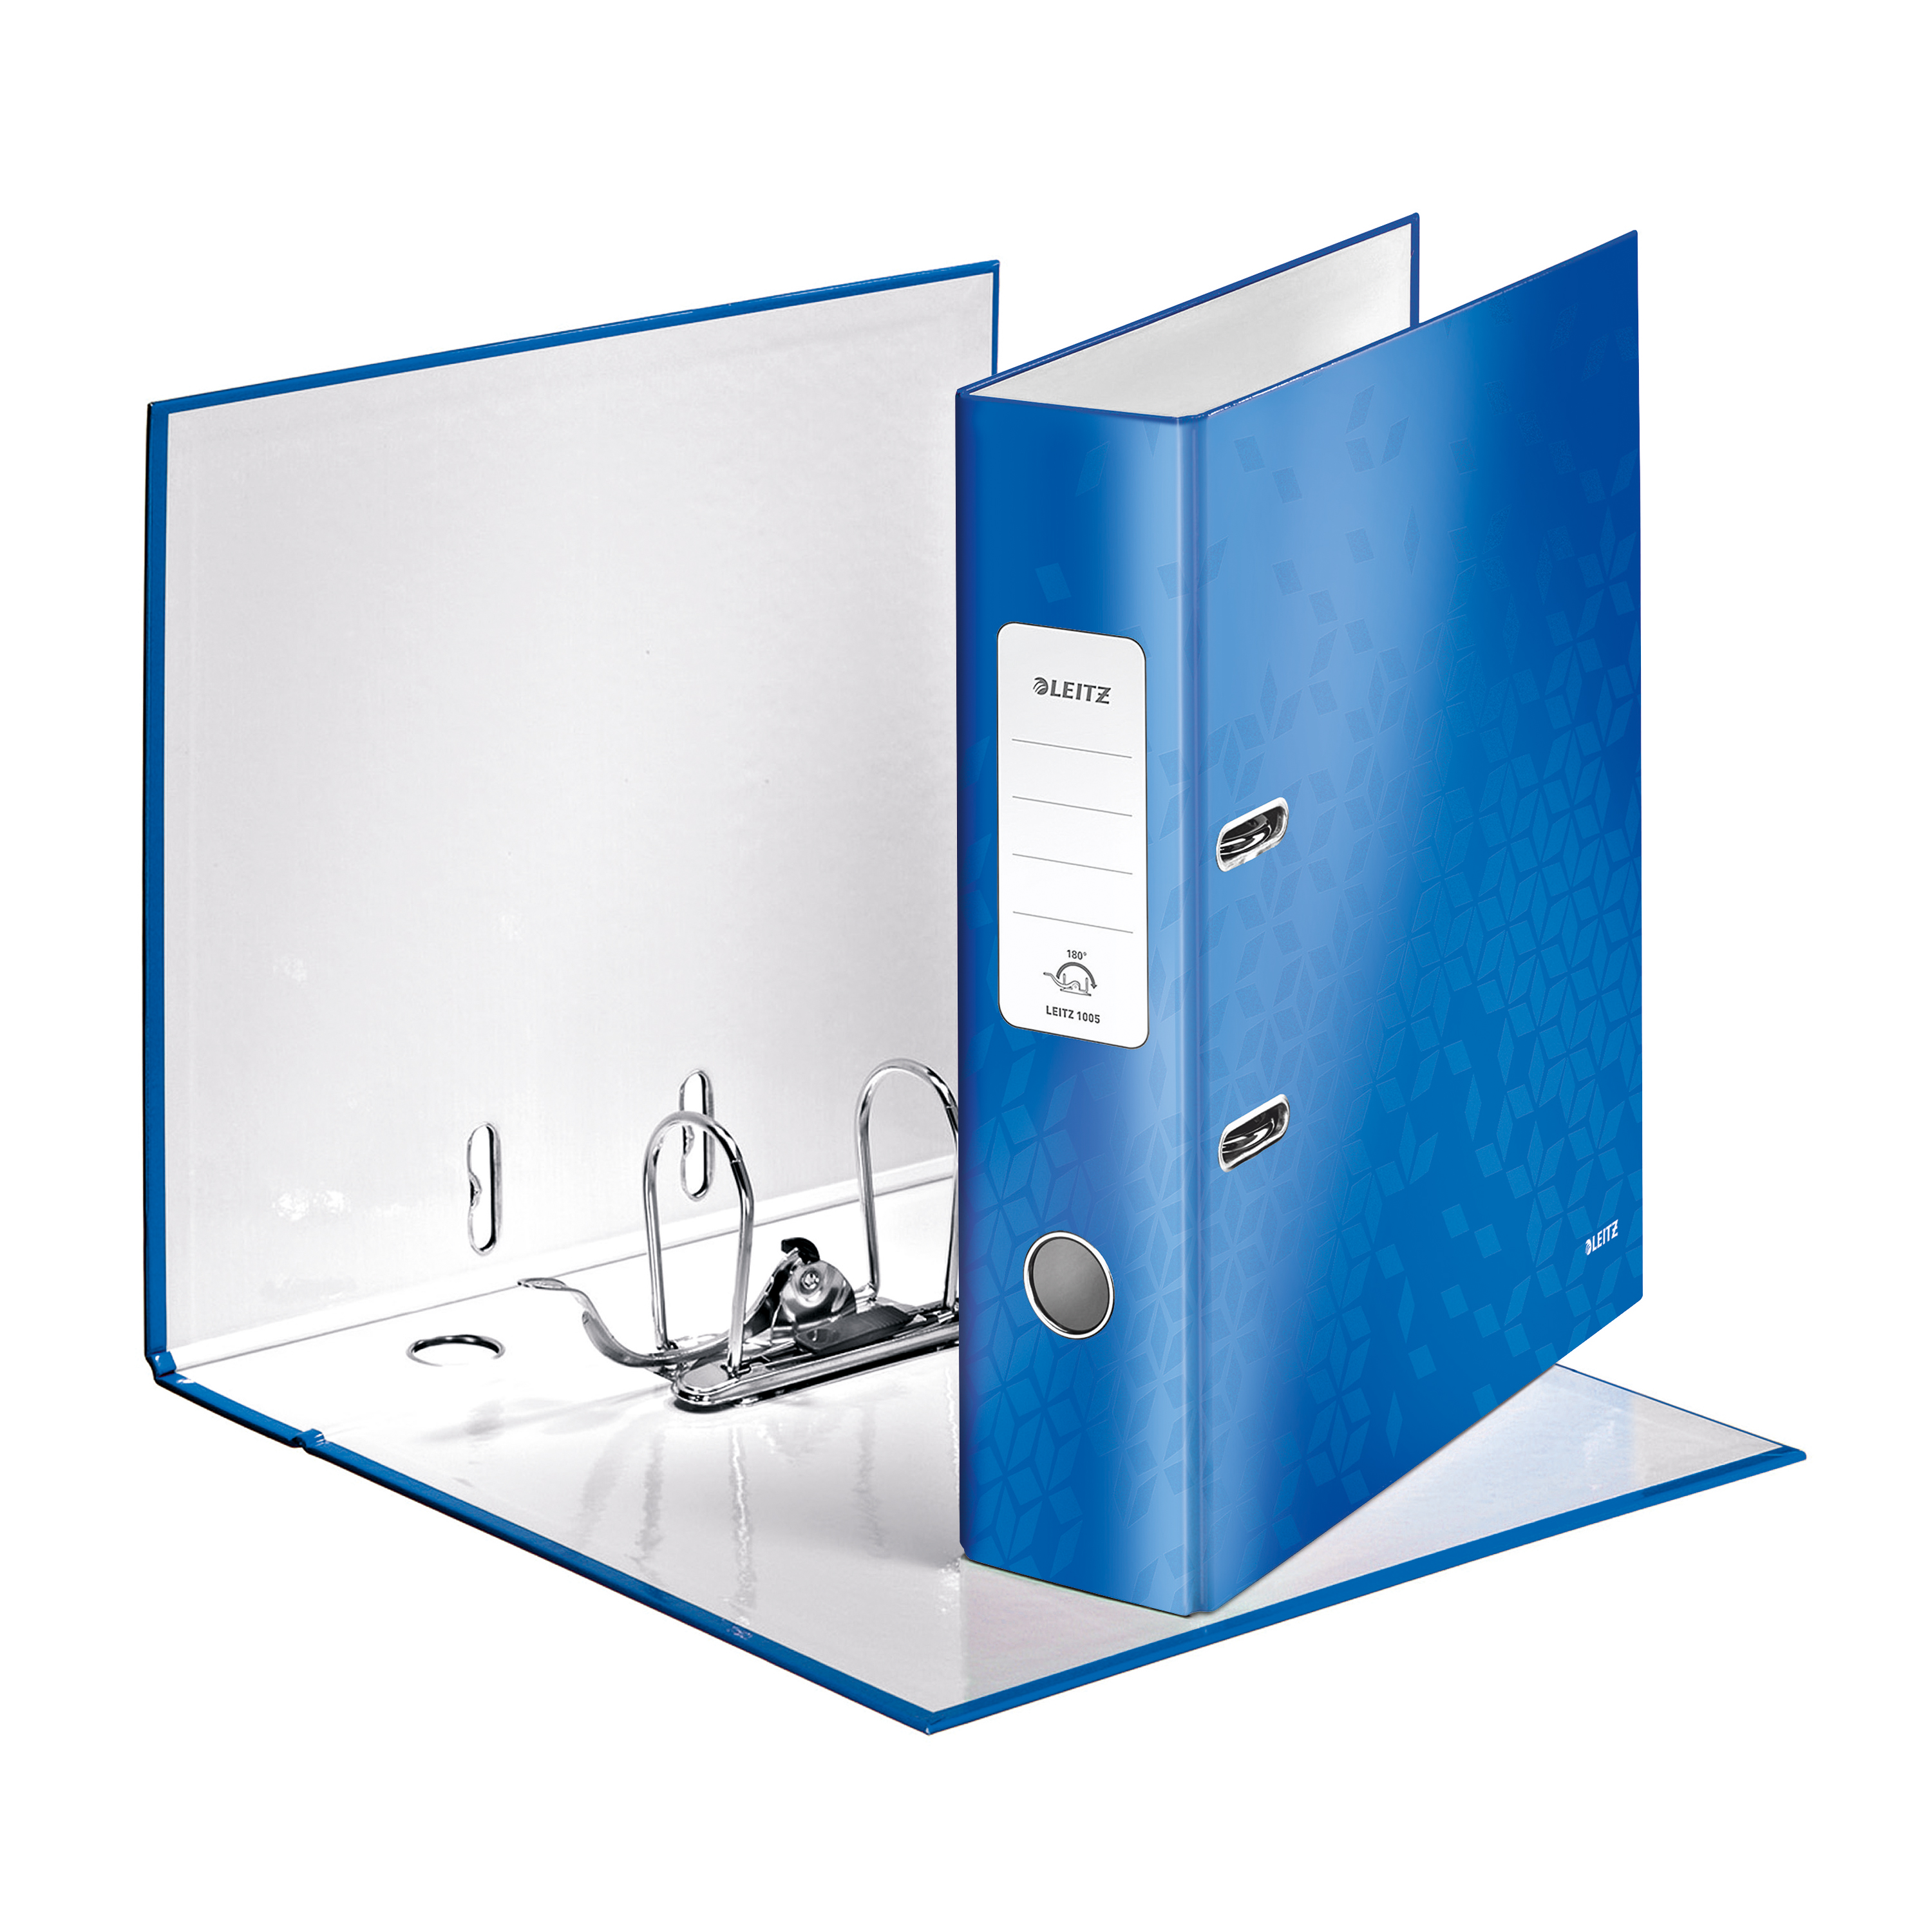 Leitz WOW Lever Arch File 80mm Spine for 600 Sheets A4 Blue Ref 10050036 [Pack 10] [REDEMPTION] Apr-Jun20